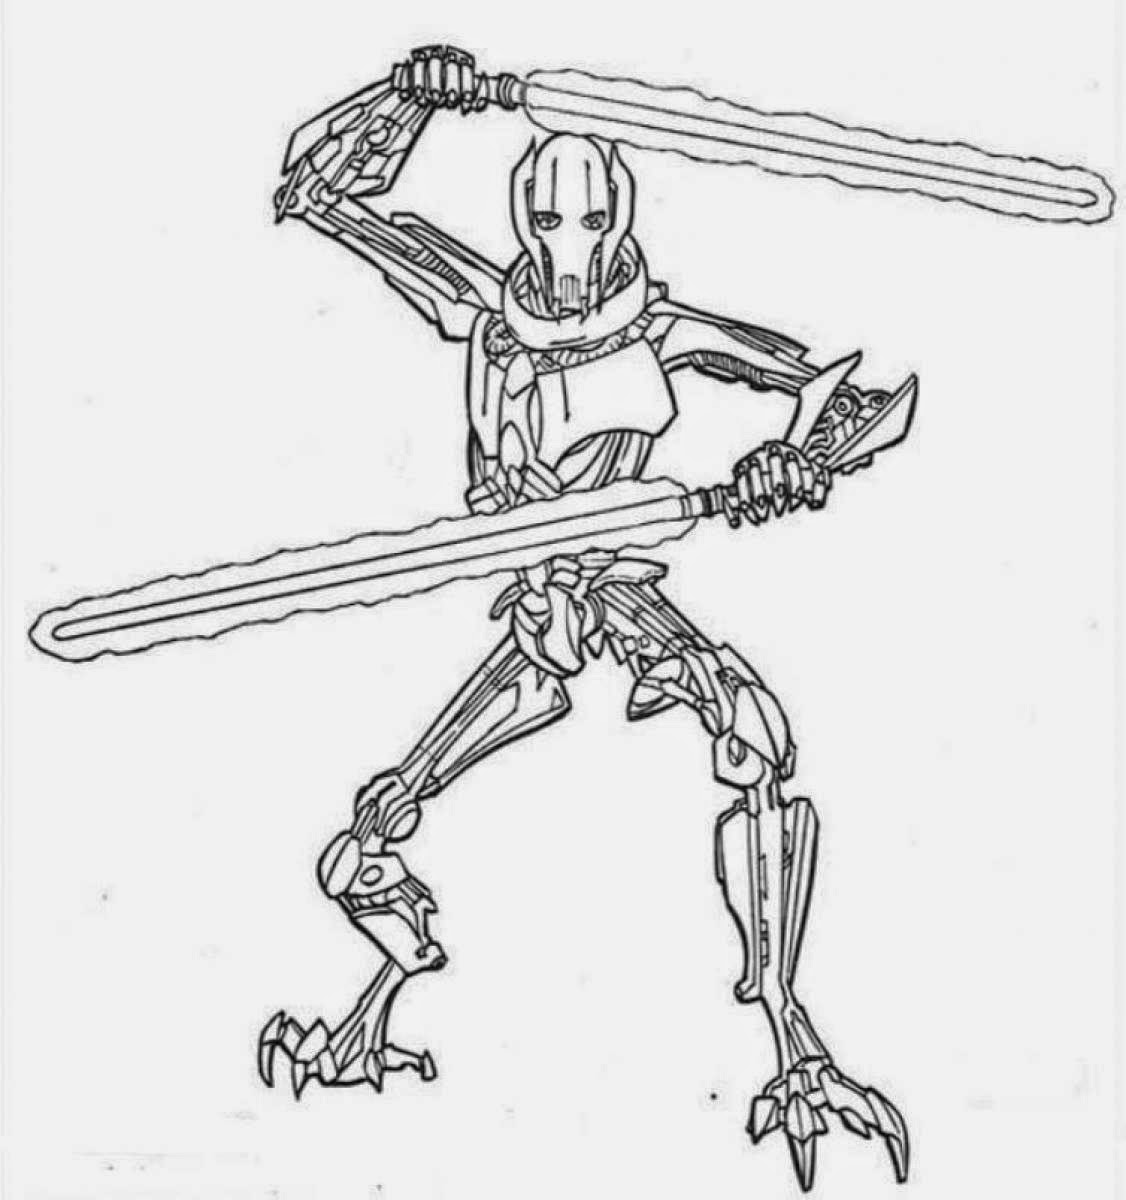 star wars free coloring pages star wars free to color for kids star wars kids coloring wars coloring pages free star